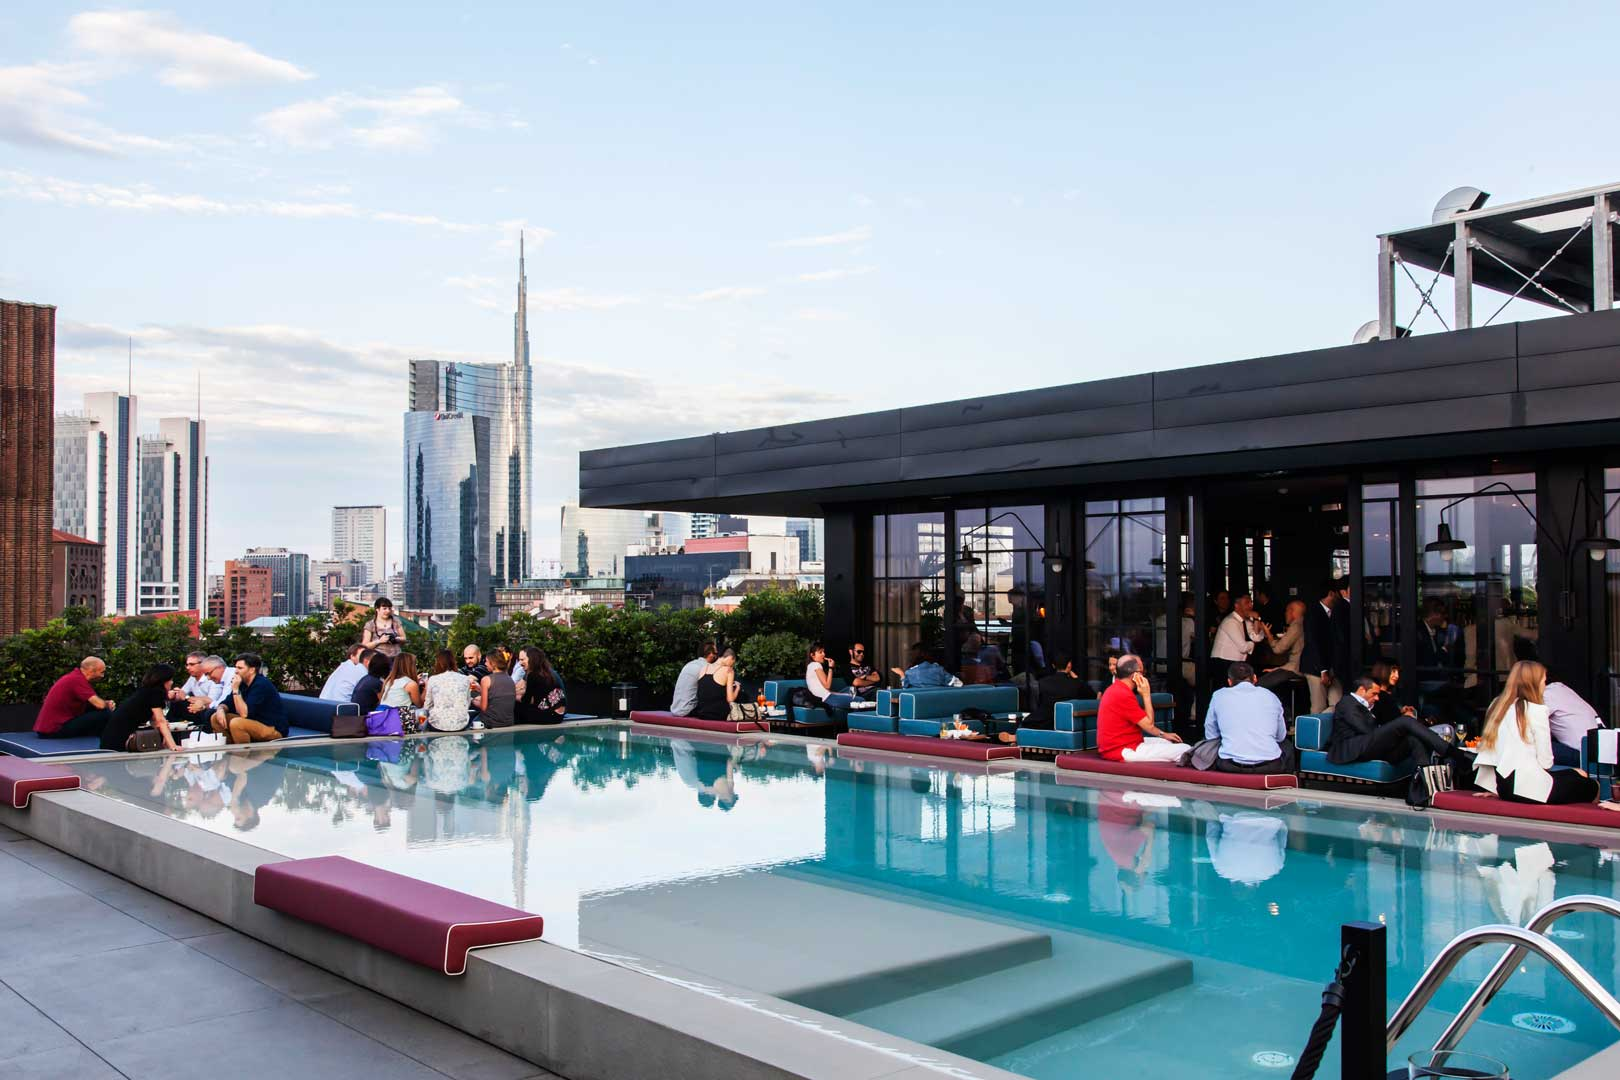 Ceresio 7  Flawless Milano  The Lifestyle Guide